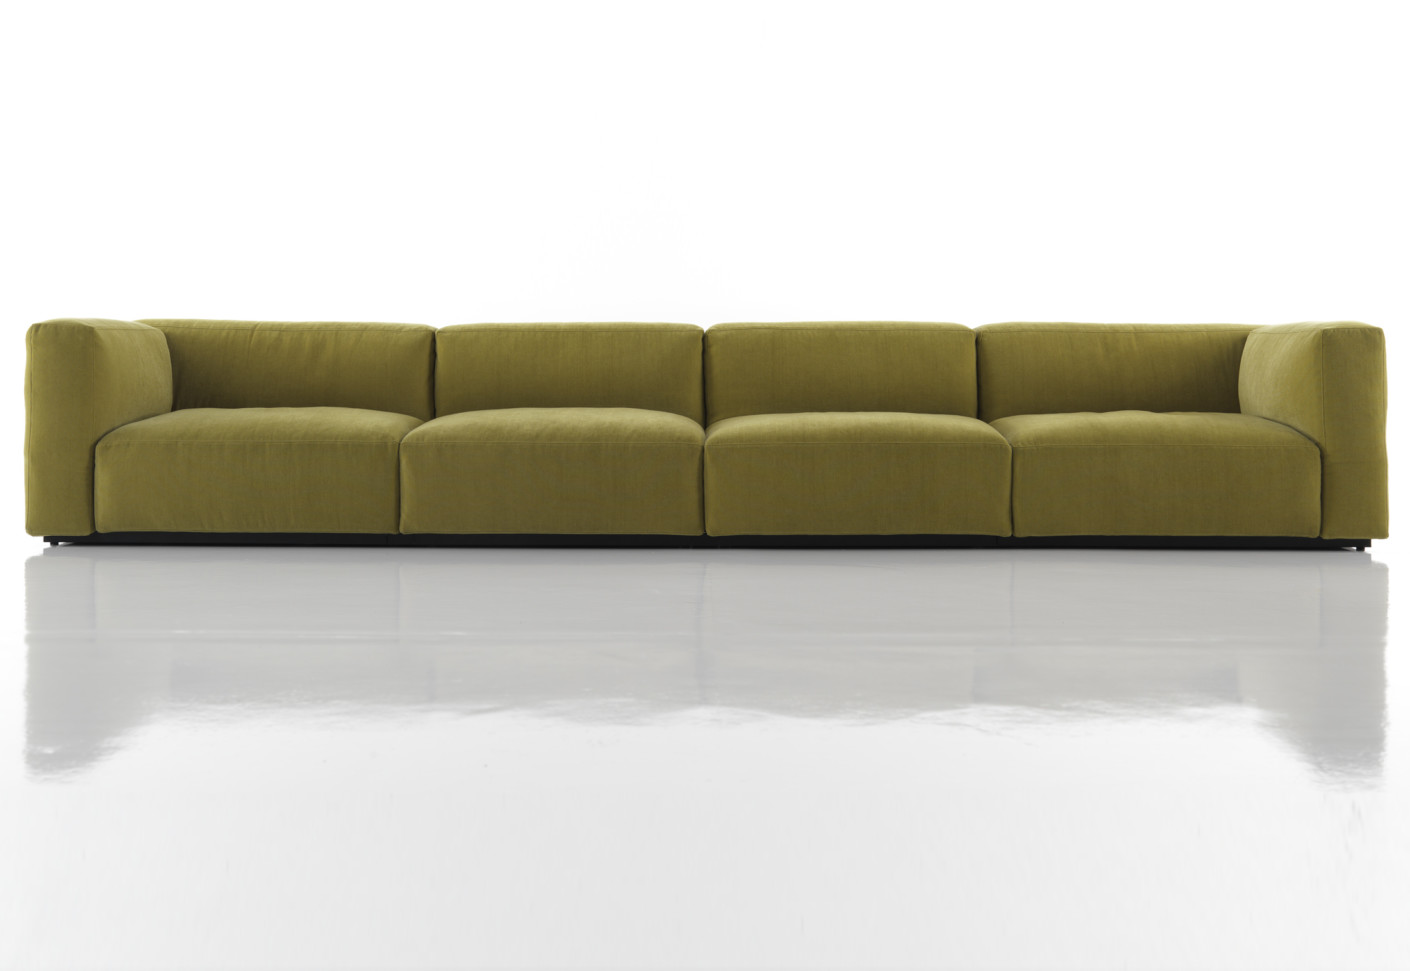 wooden furniture sofa set images ligne roset prices mex cube by cassina | stylepark